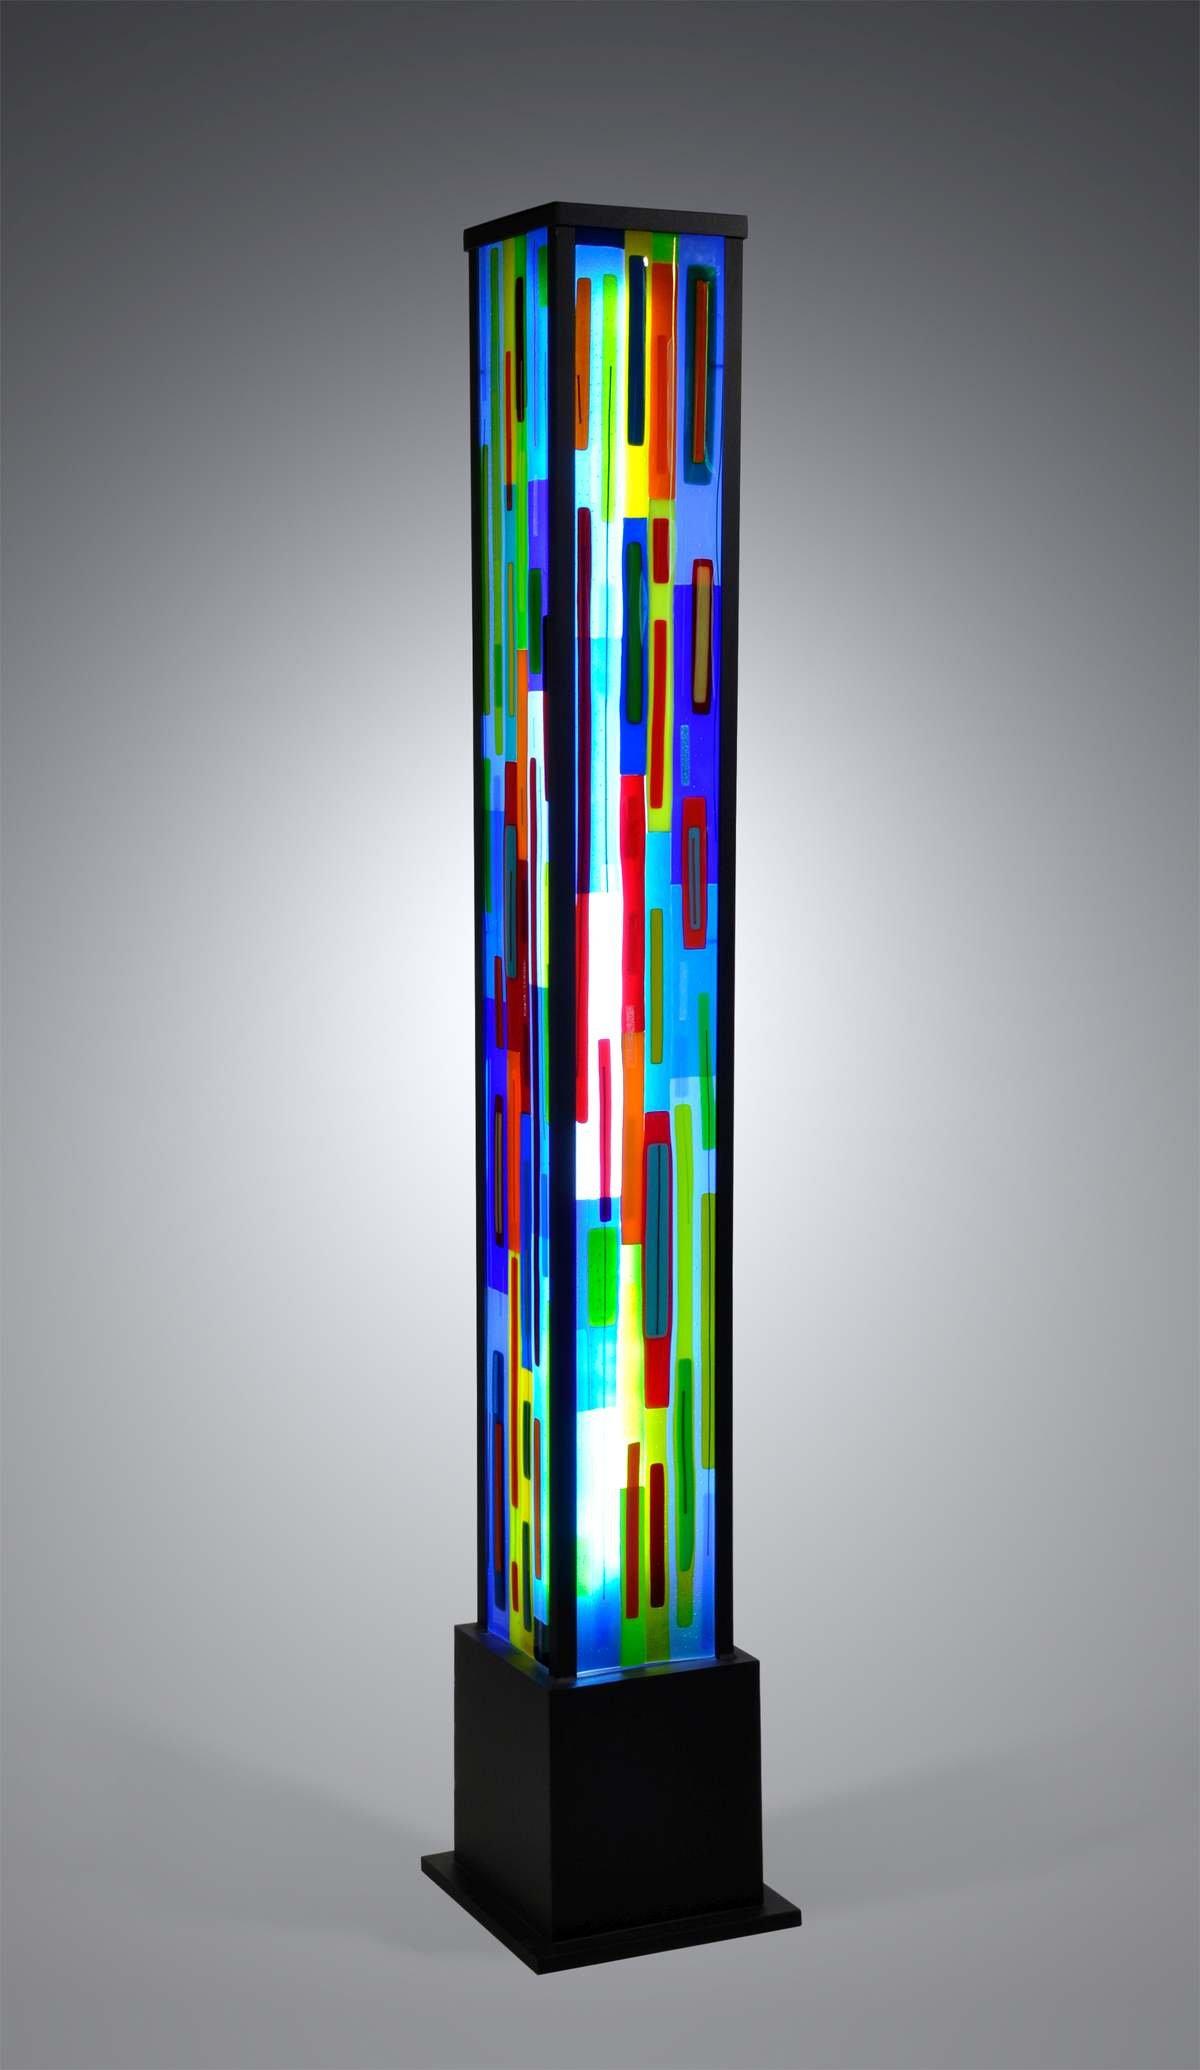 Uplift by helen rudy art glass floor lamp pinterest art glass uplift by helen rudy art glass sculpture available at artfulhome a modern linear interpretation of patchwork combining densely layered clear and aloadofball Images